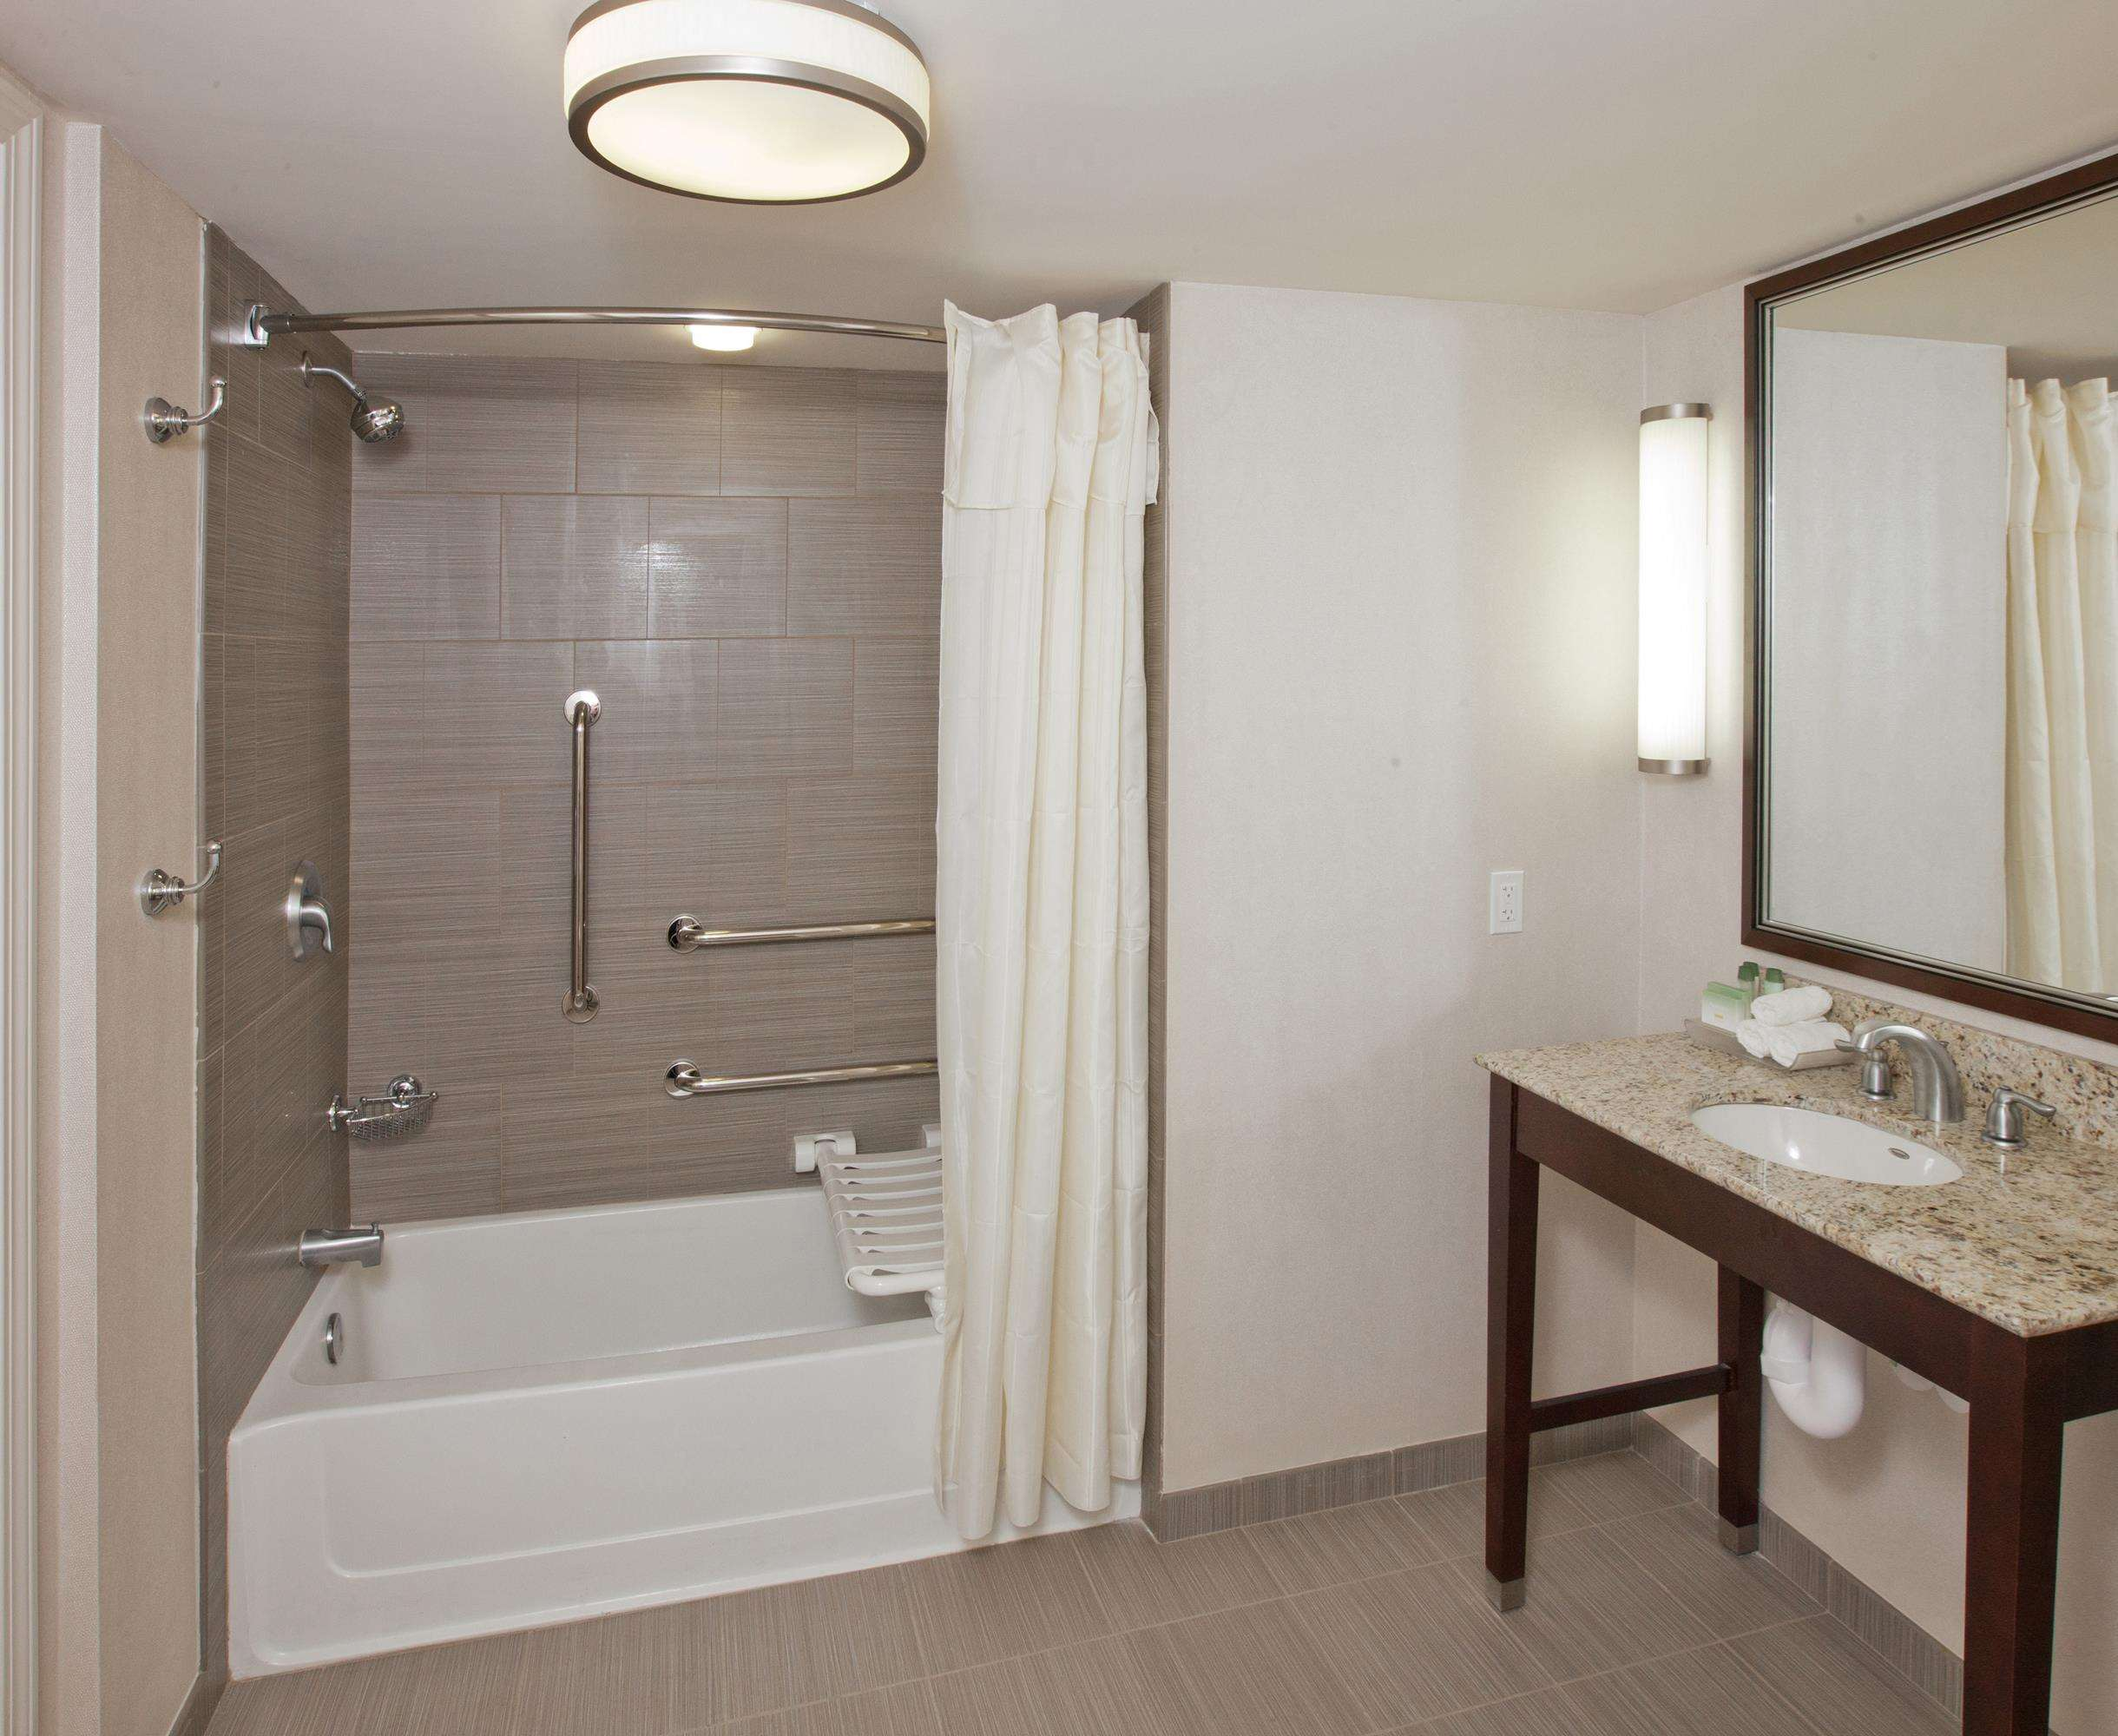 Homewood Suites by Hilton Boston/Canton, MA image 15